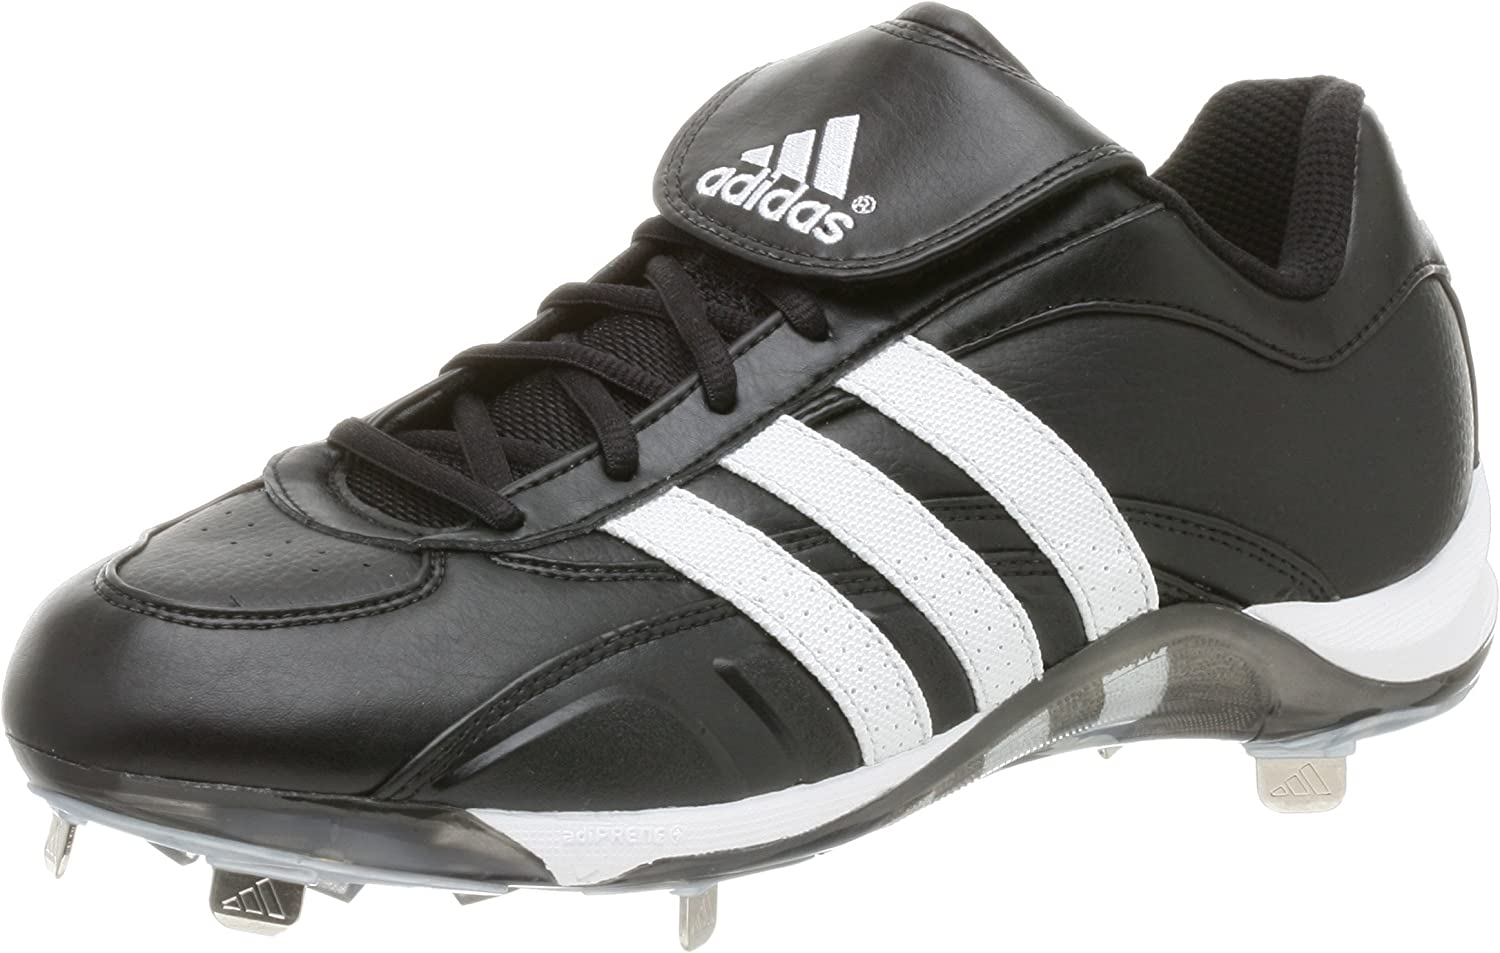 Adidas Men's Excelsior 5 Low Baseball shoes